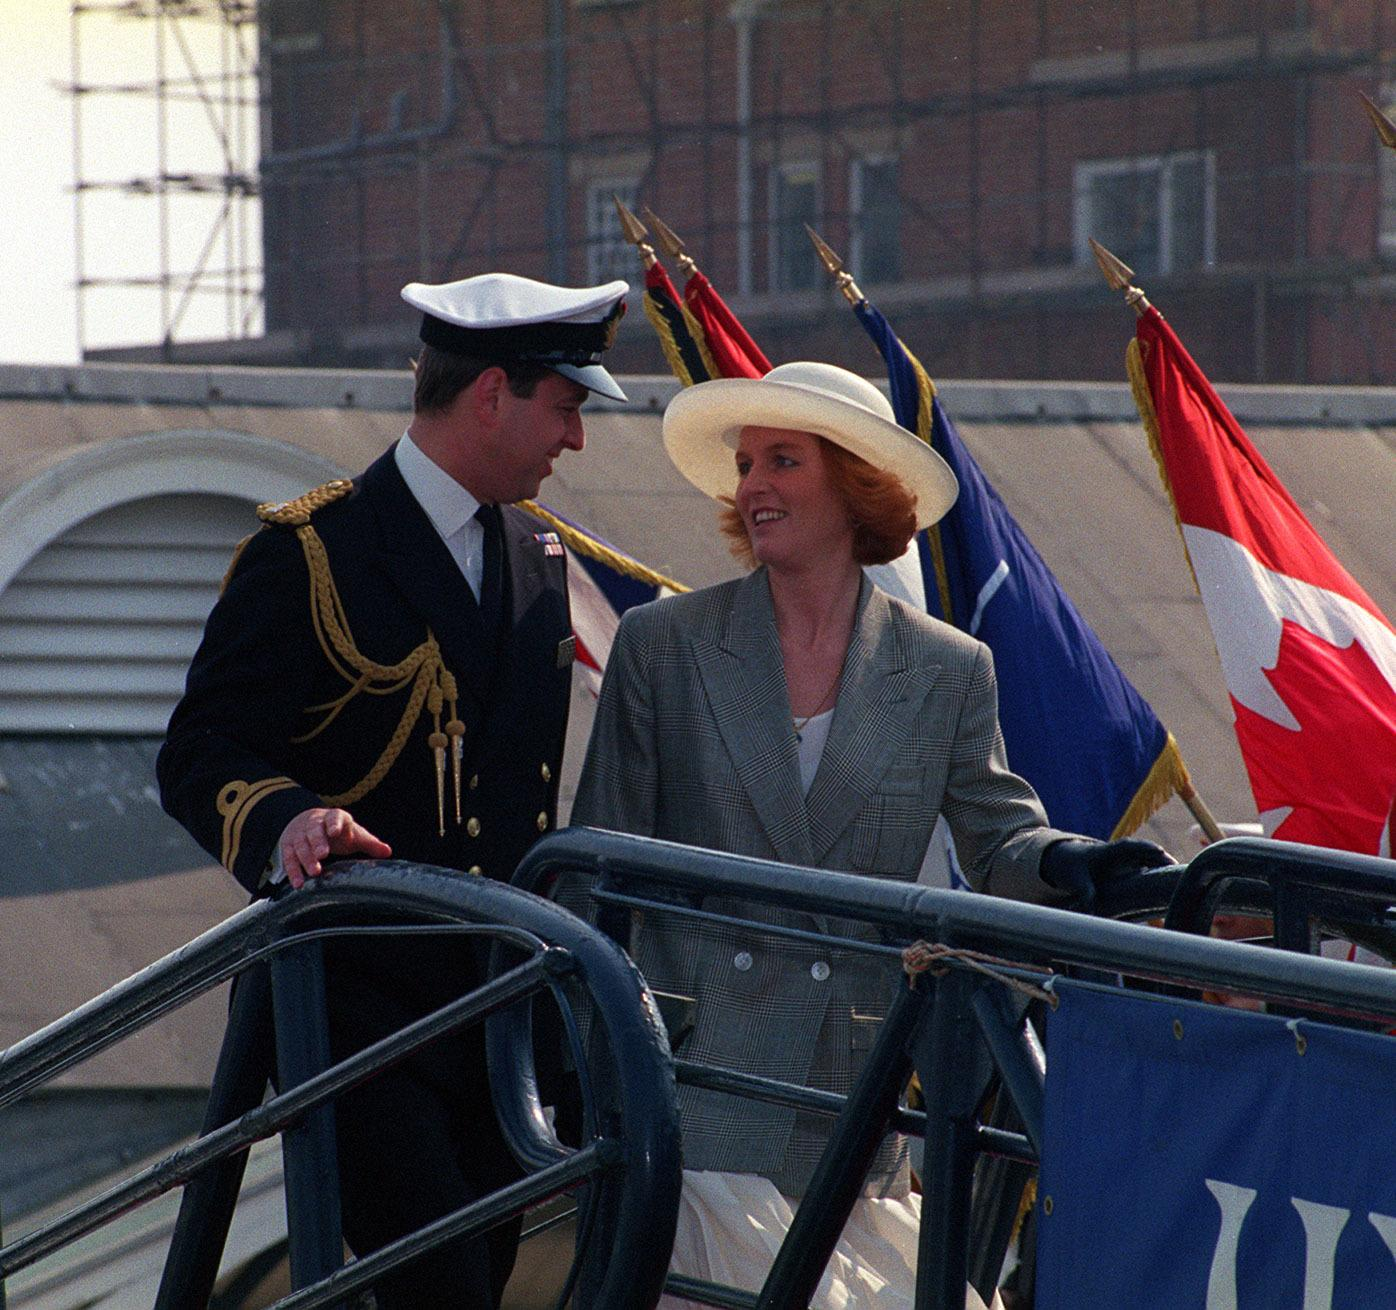 The Duke and Duchess of York board HMS Cambeltown at Portsmouth Harbour prior to a days sailing in the channel with the Queen and the Duke of Edinburgh.